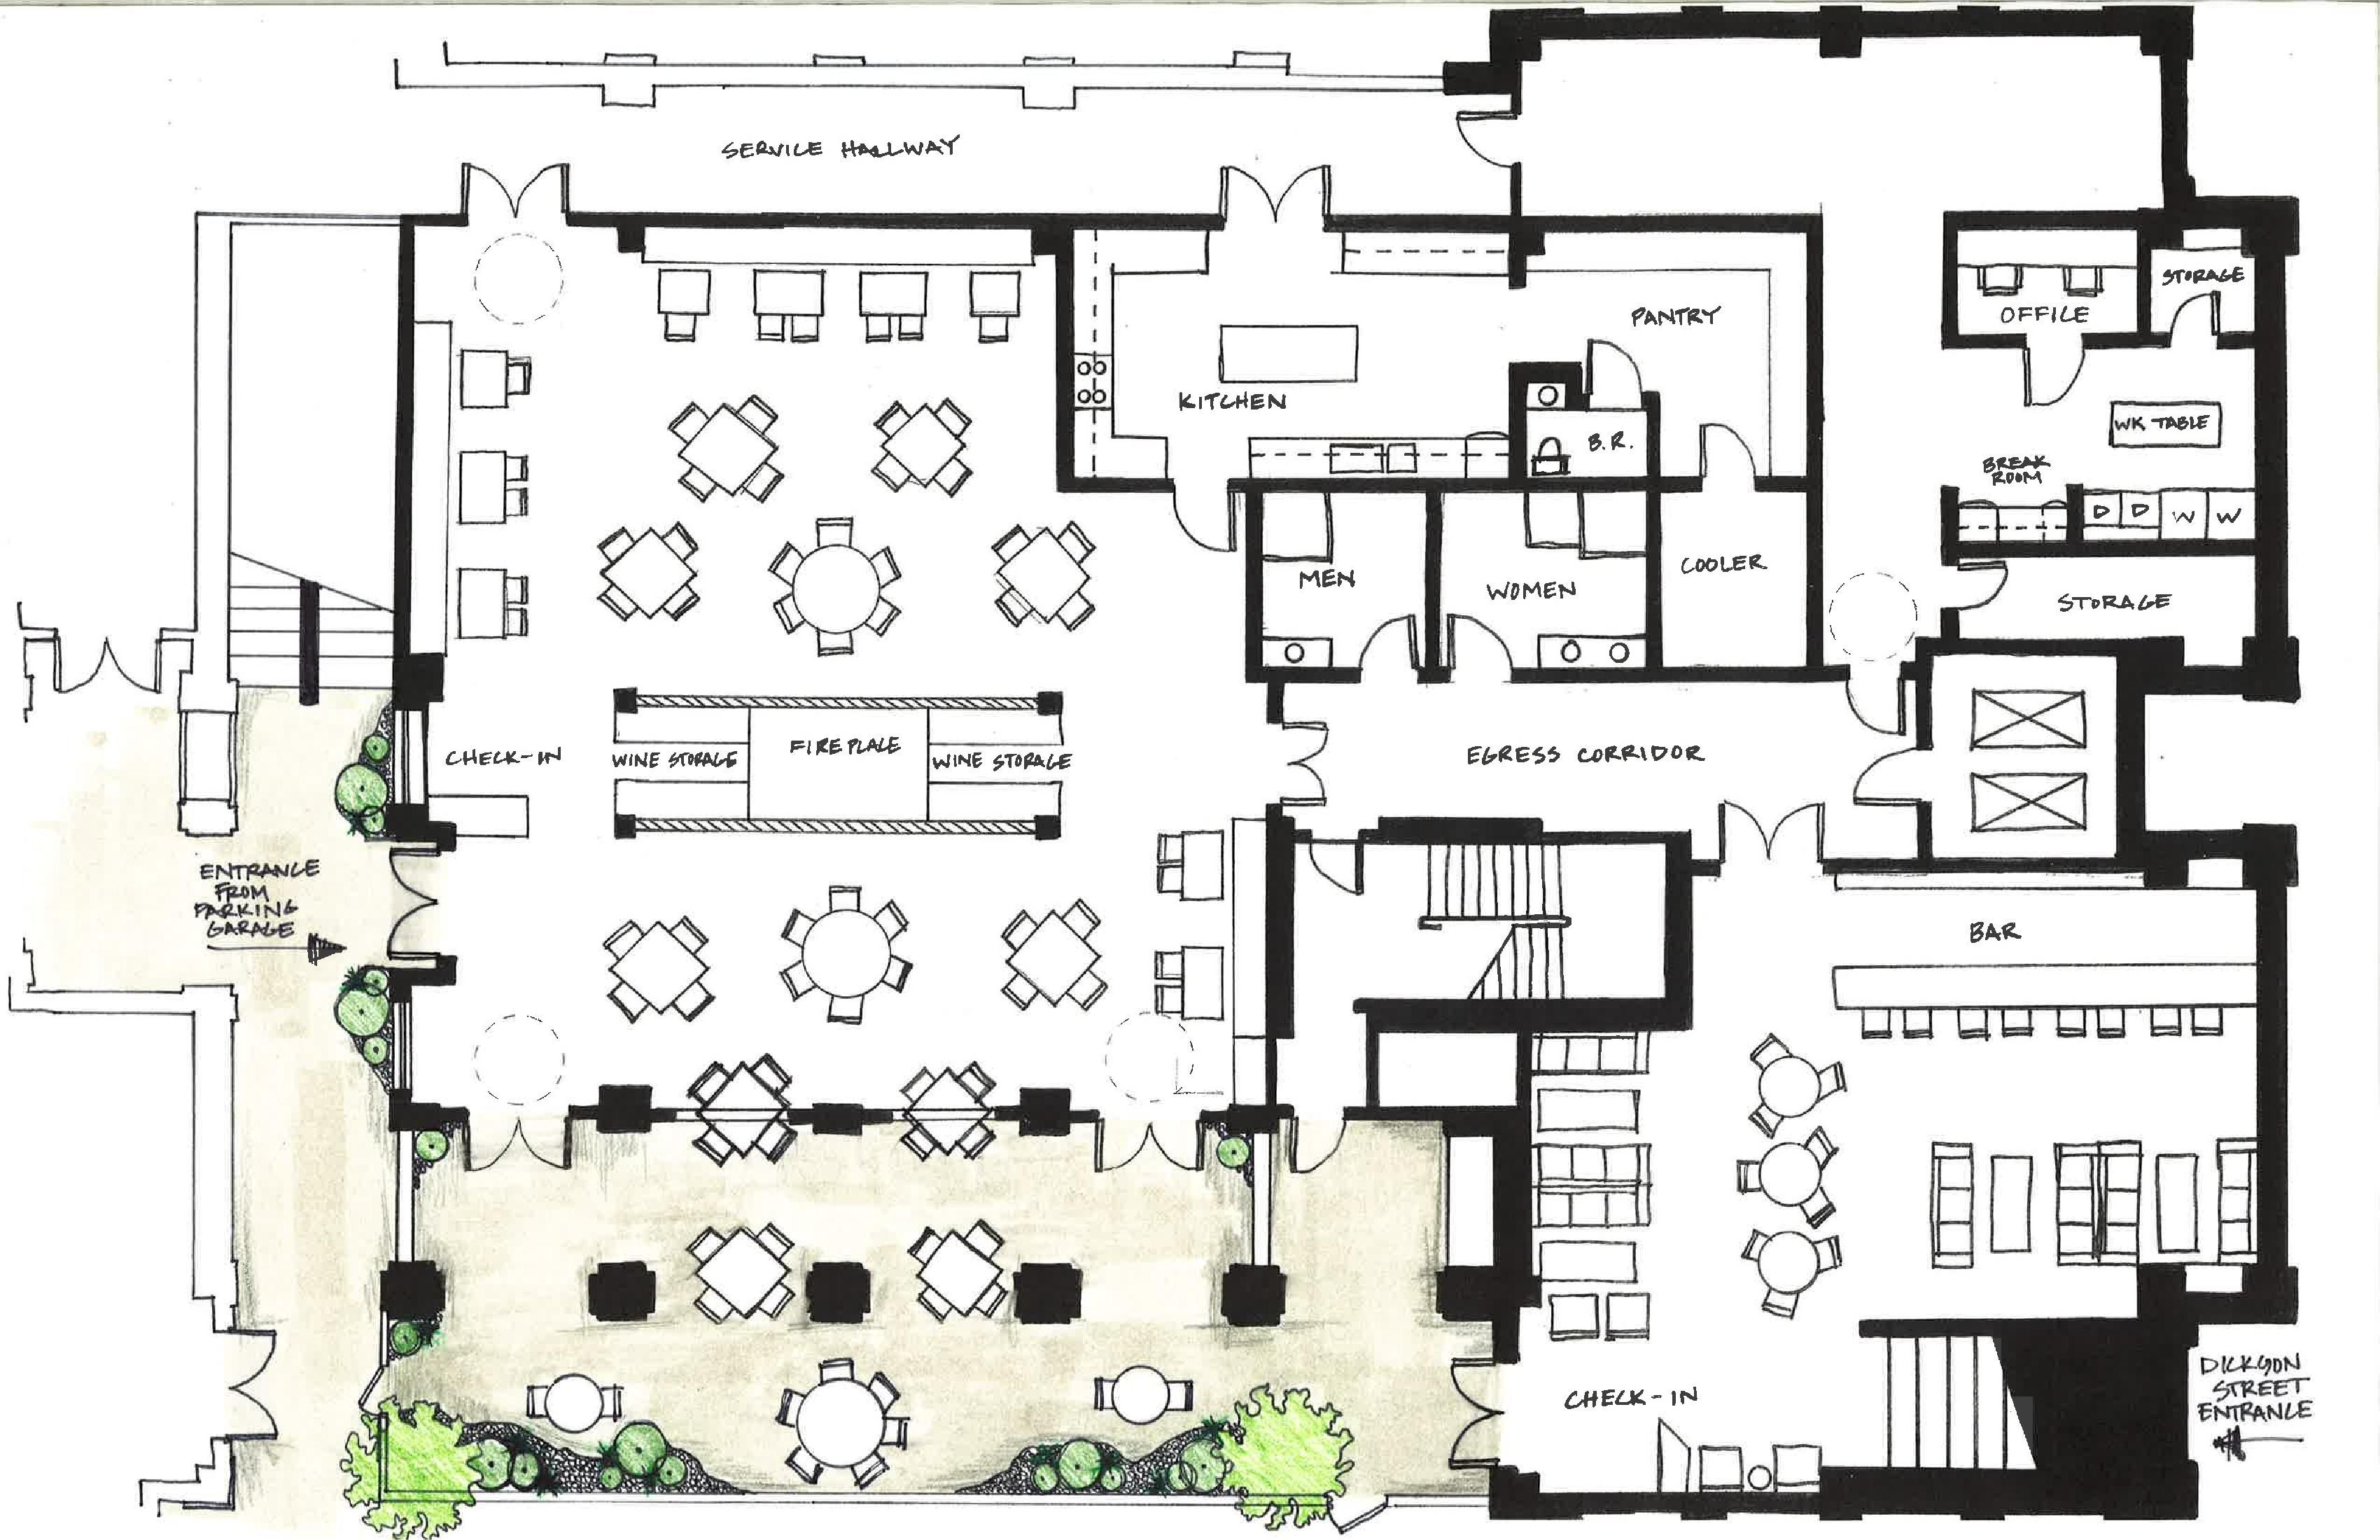 Good Italian Restaurant Floor Plan With Architecture Design Inspired By